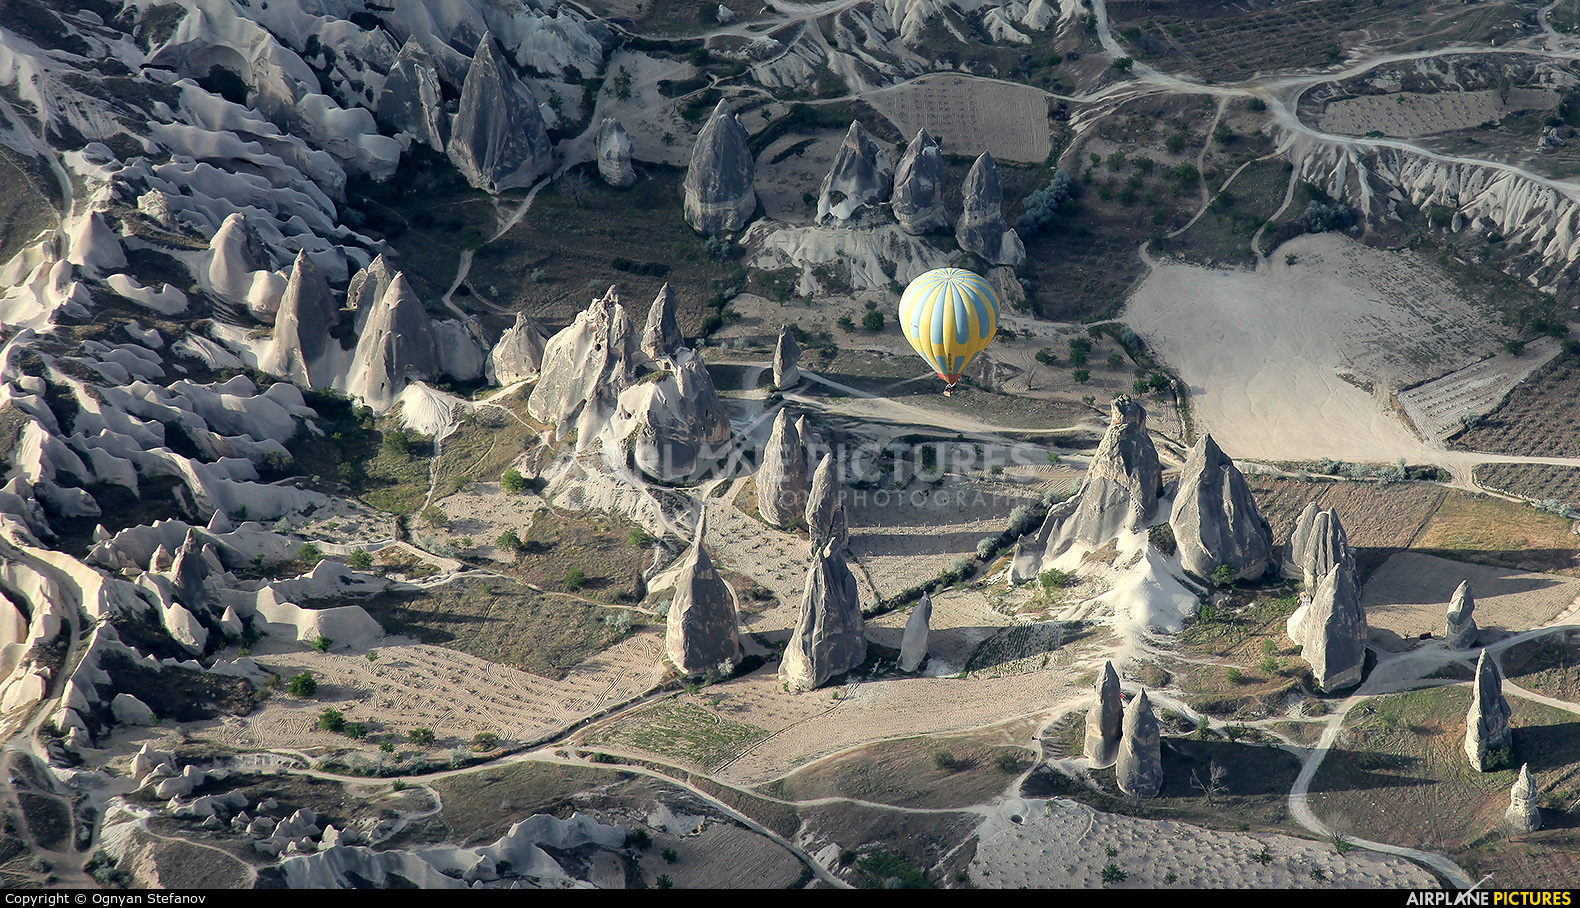 Private - aircraft at In Flight - Turkey